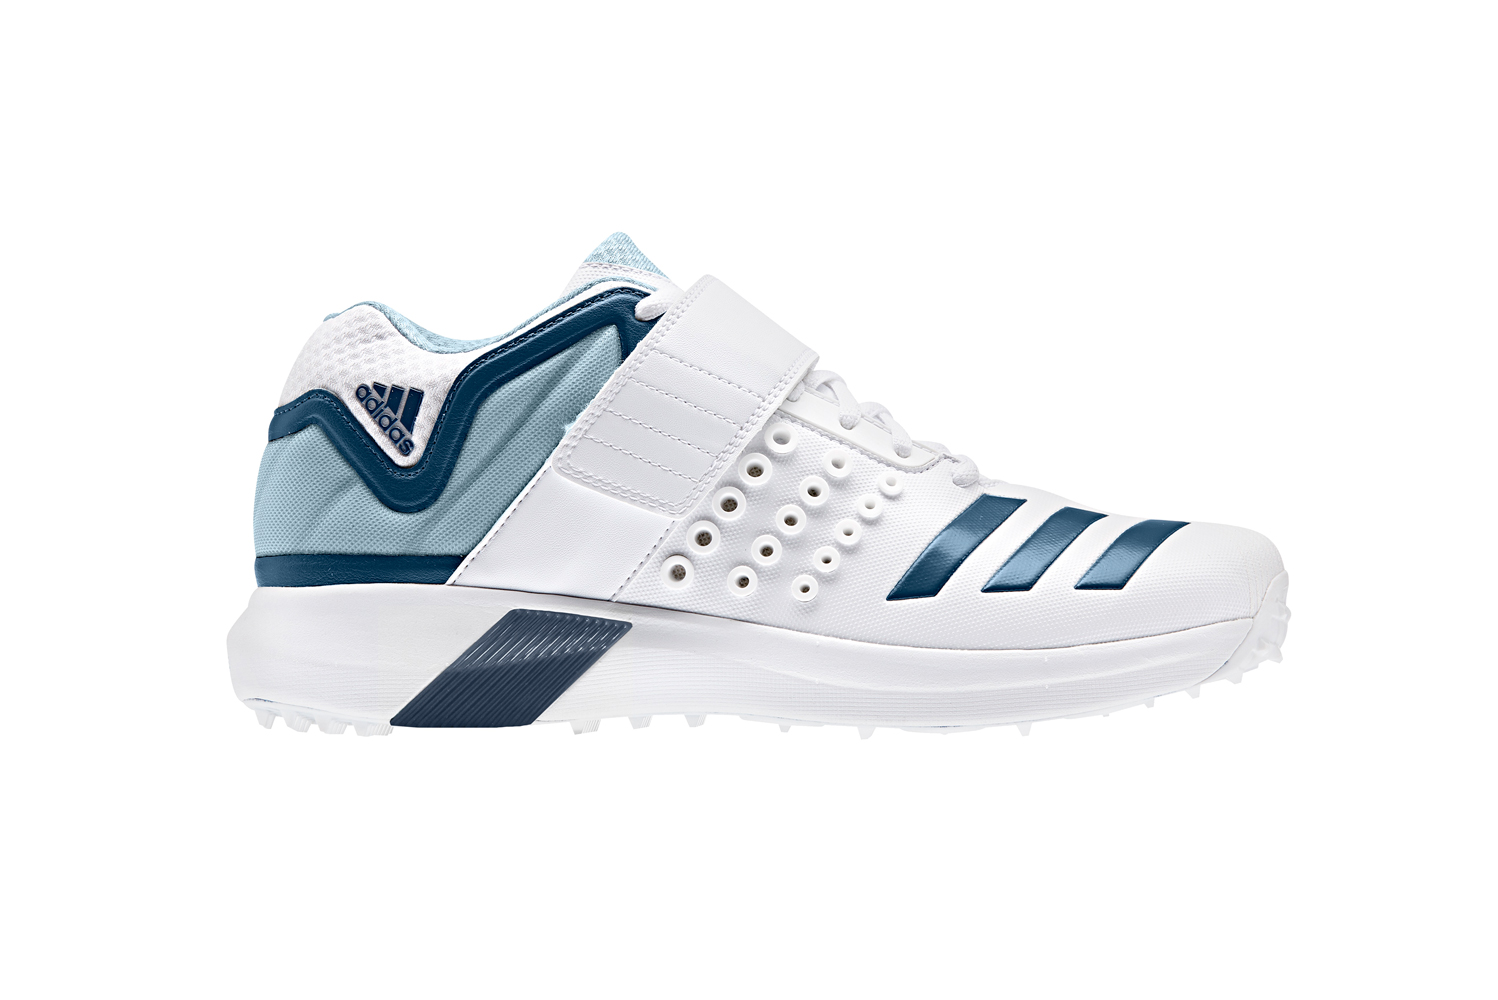 cb8fc1a0430 Buy Adidas Adipower Vector Mid Cricket Shoes 2019 Online in UK - VKS.com